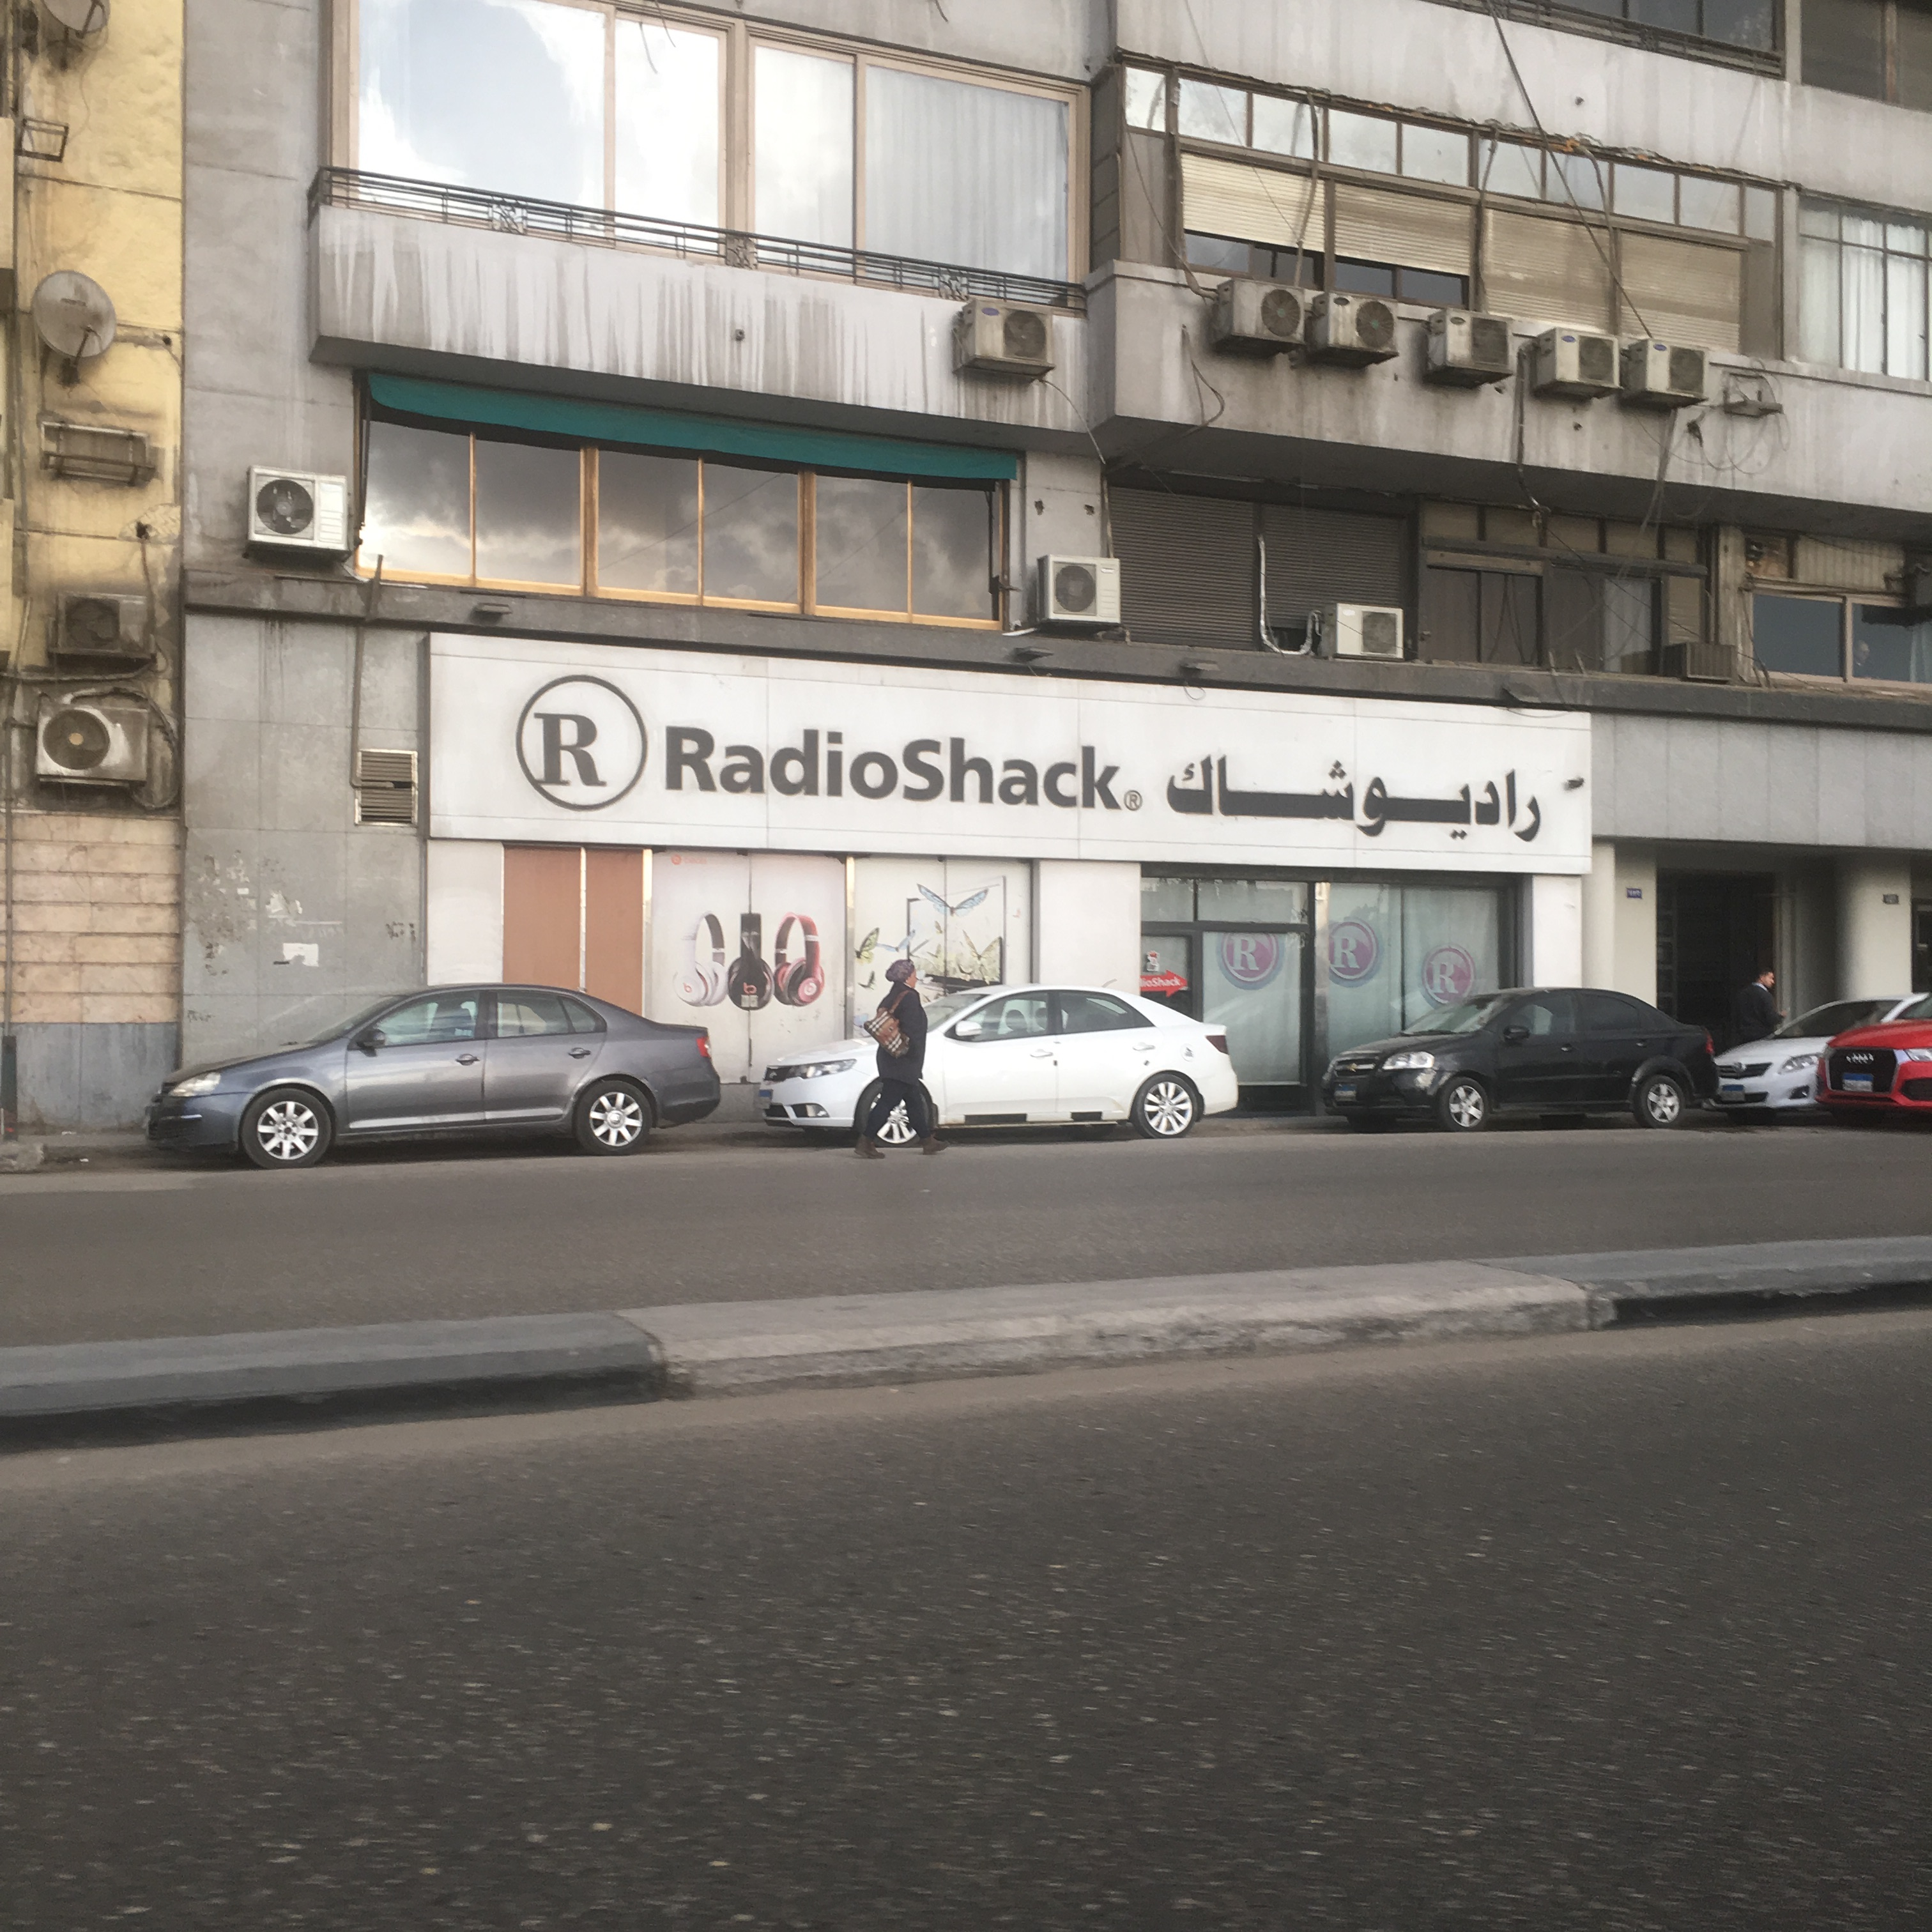 Radio Shack Stores: Looking For A Radio Shack Store? Try Cairo, Egypt